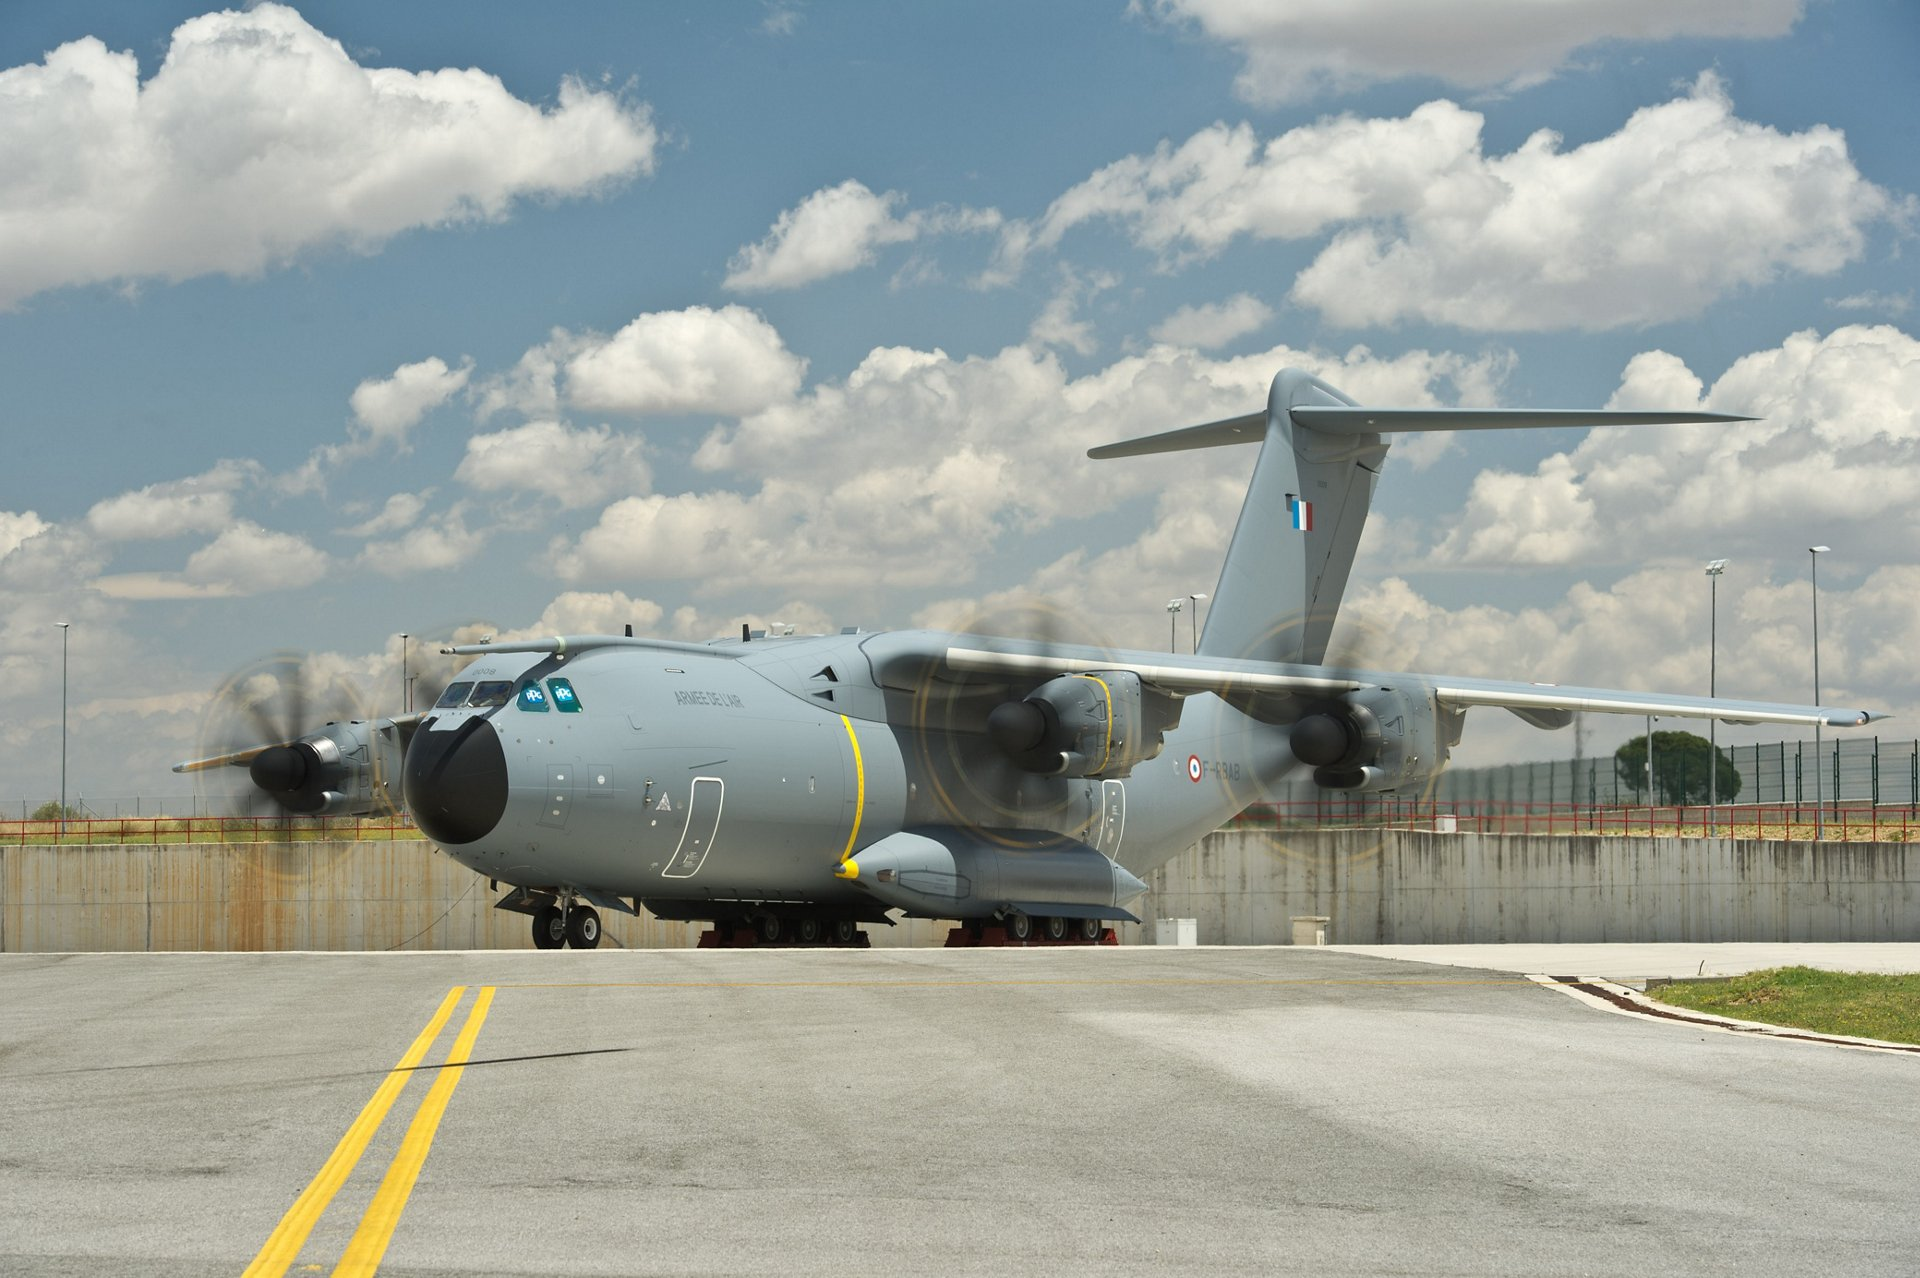 Airbus Military's second production A400M, which will be delivered to the French Air Force, successfully completed its first engine runs at the Seville, Spain assembly facility in preparation for a May 2013 maiden flight